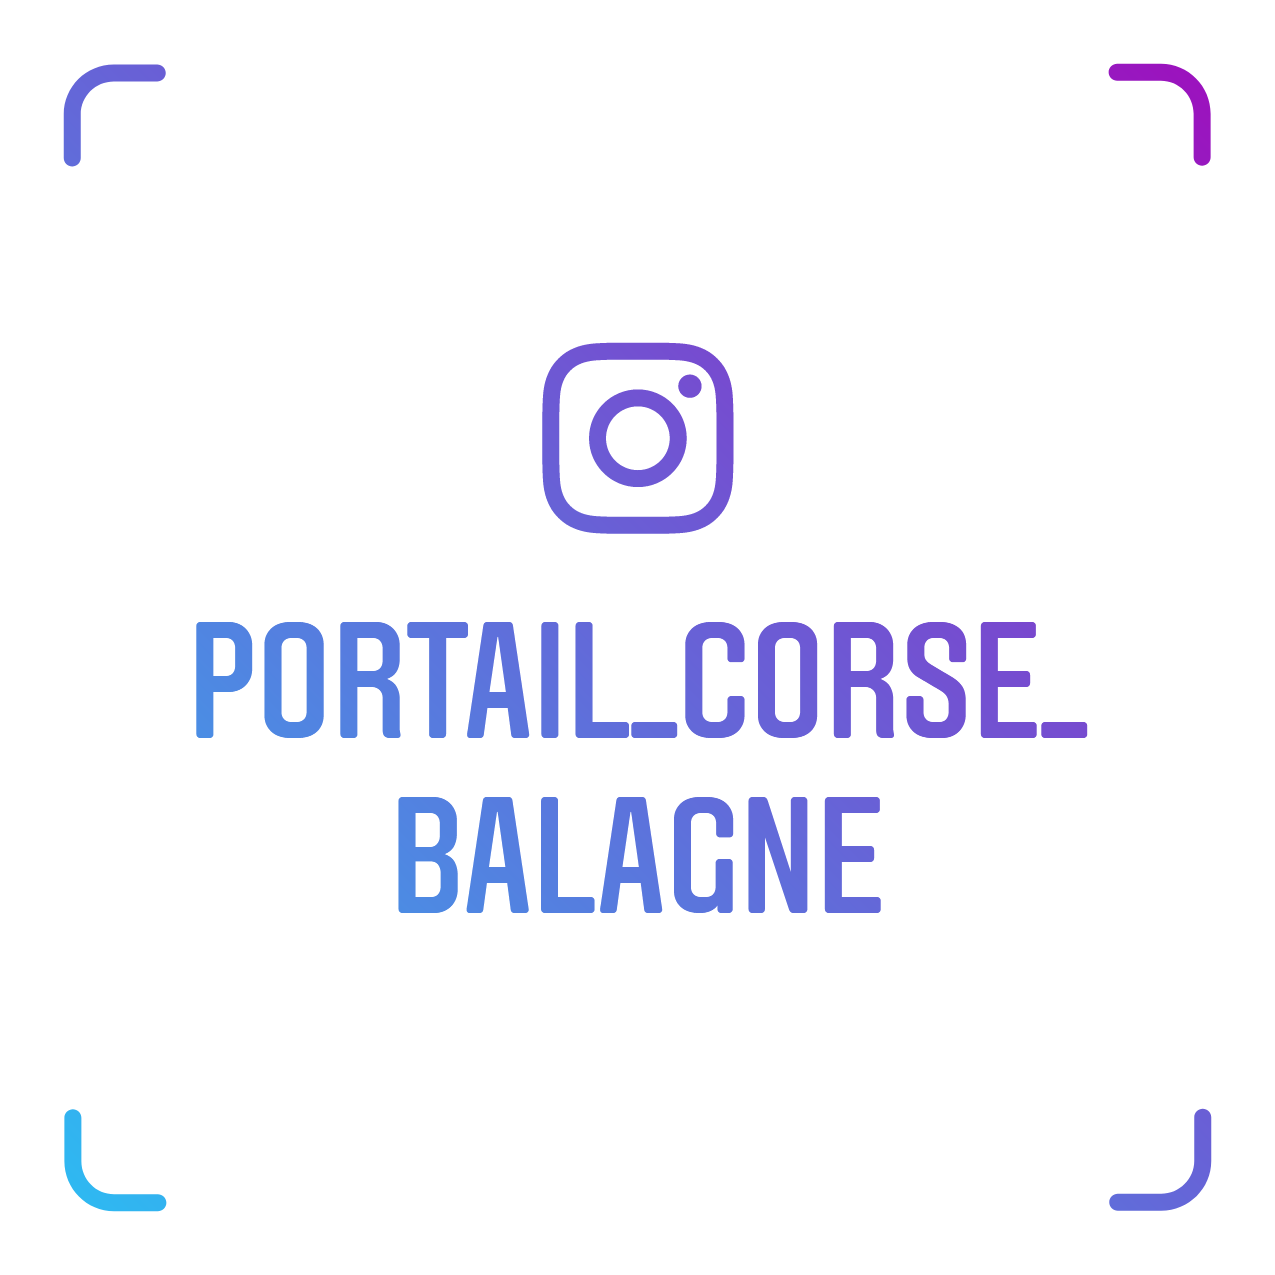 portail_corse_balagne_nametag_instagram.png